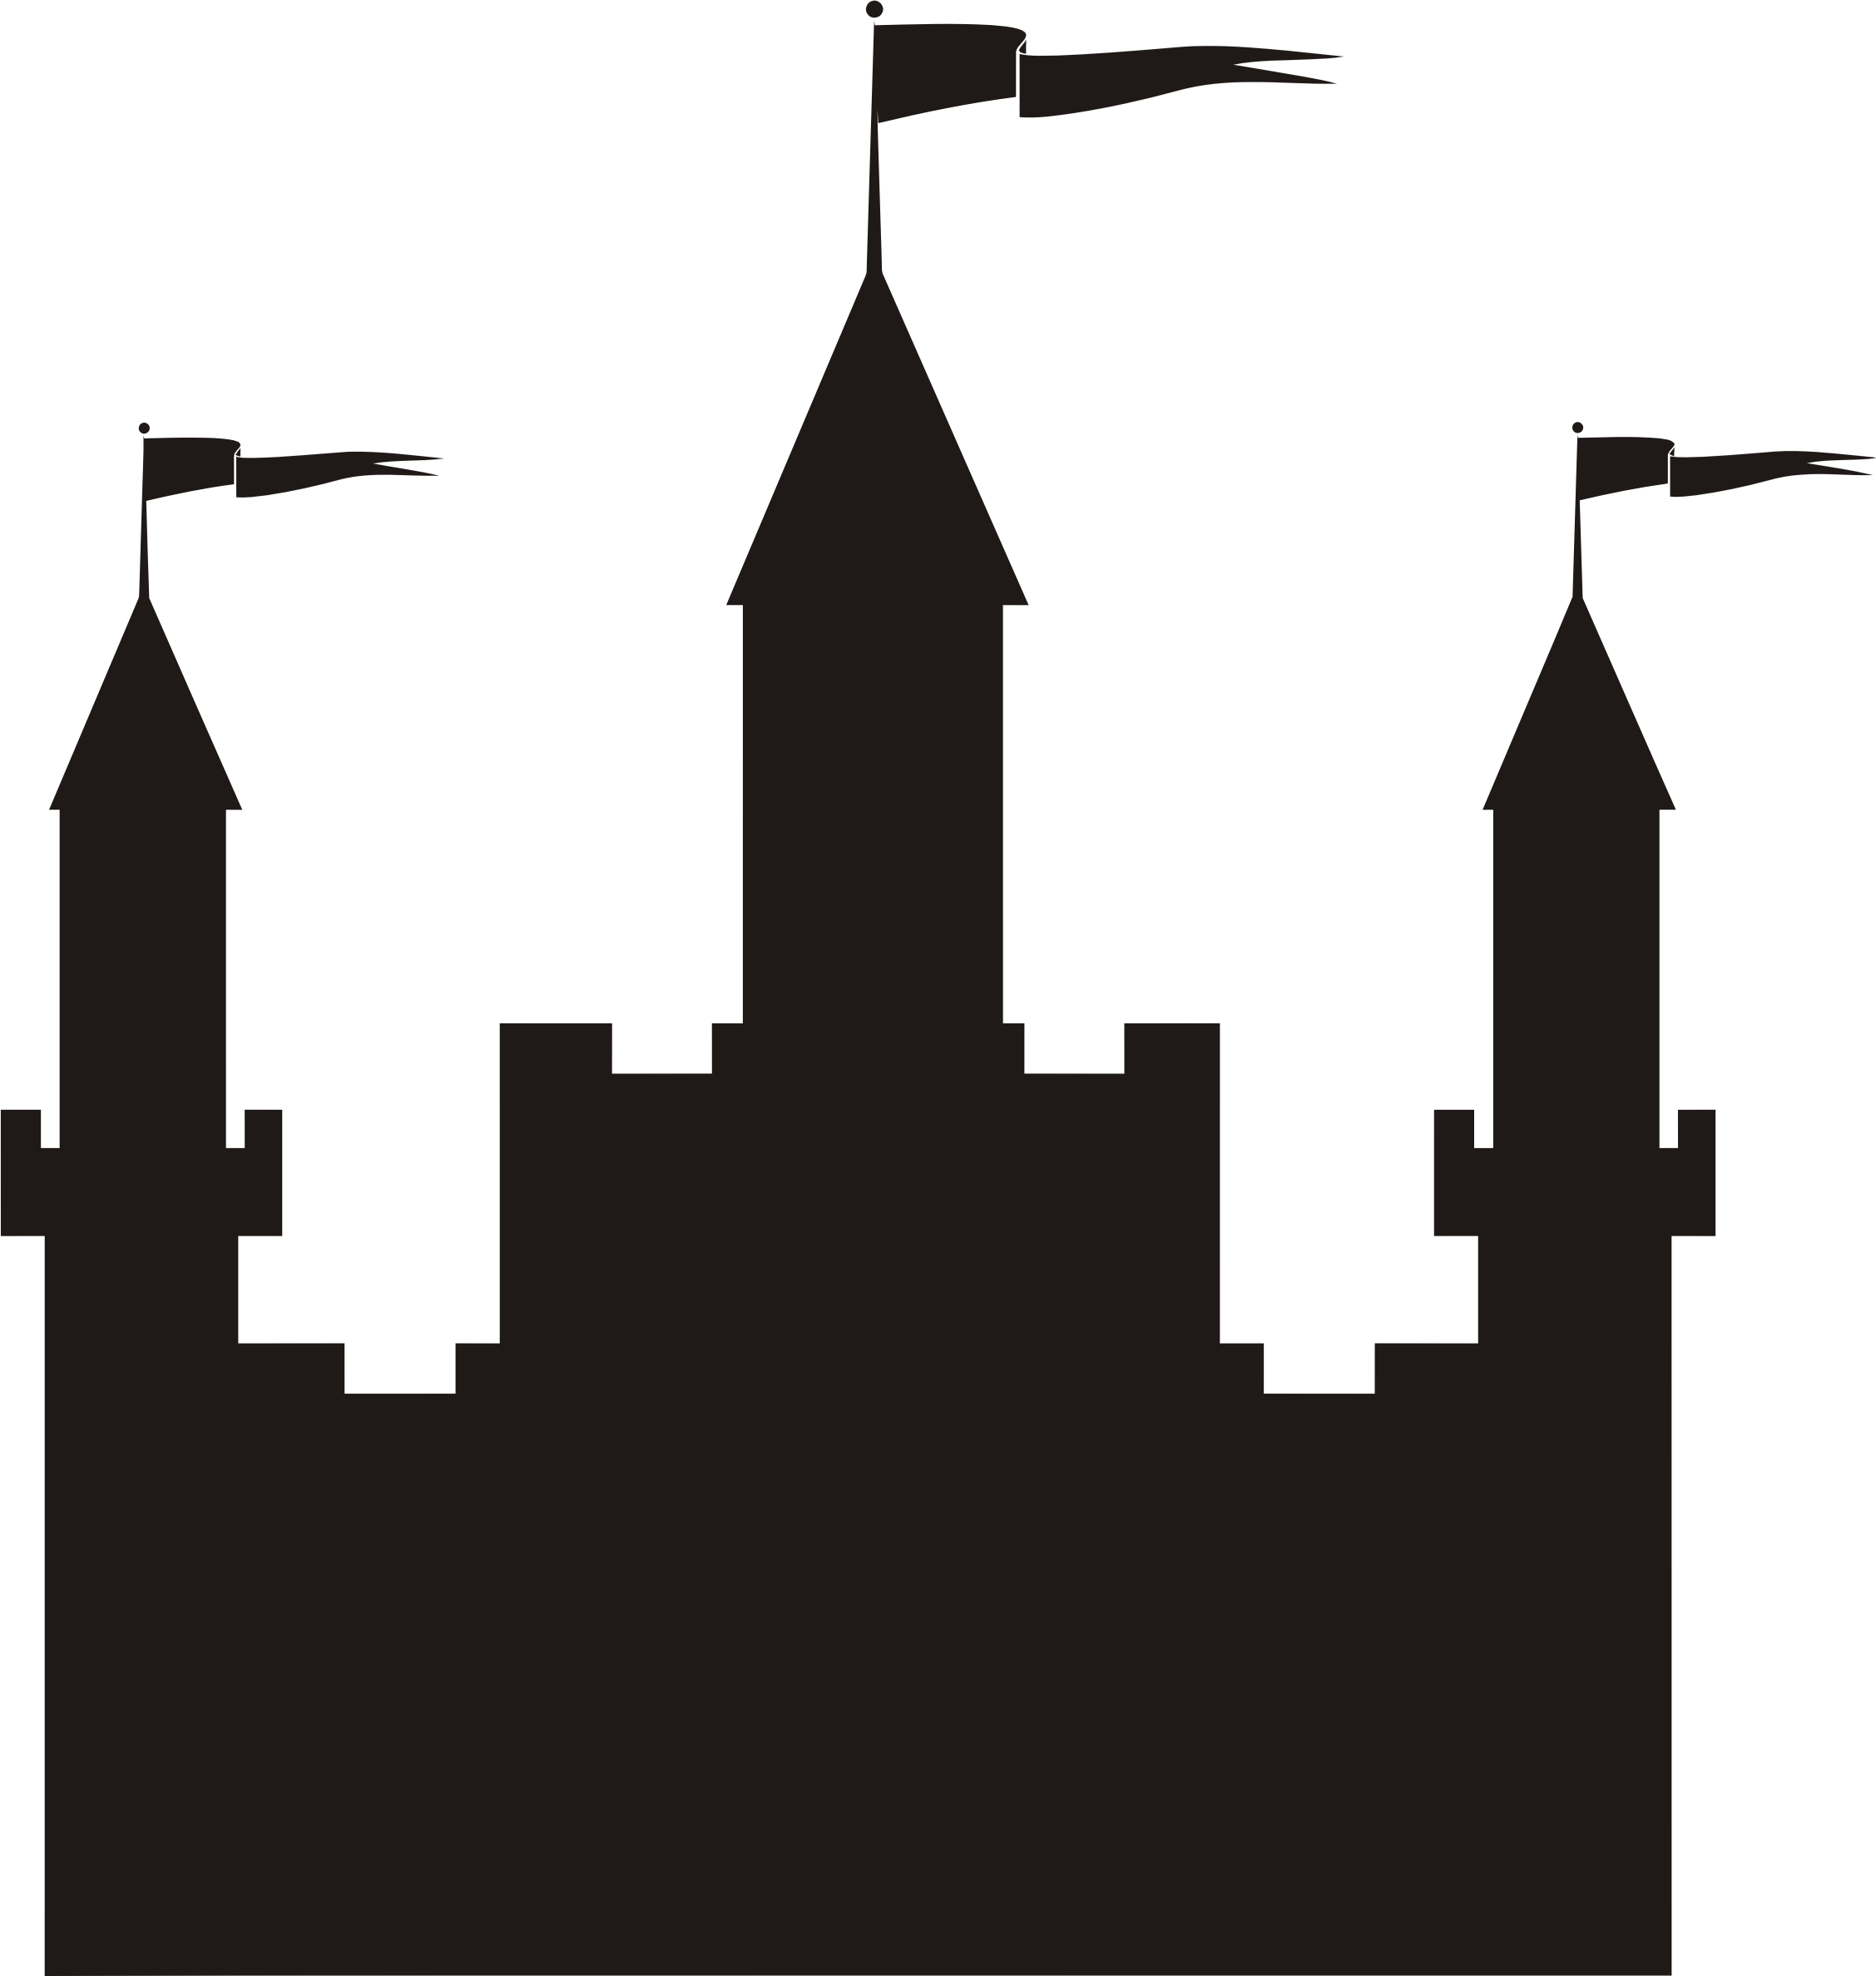 Castle silhouette png. Icons free and downloads